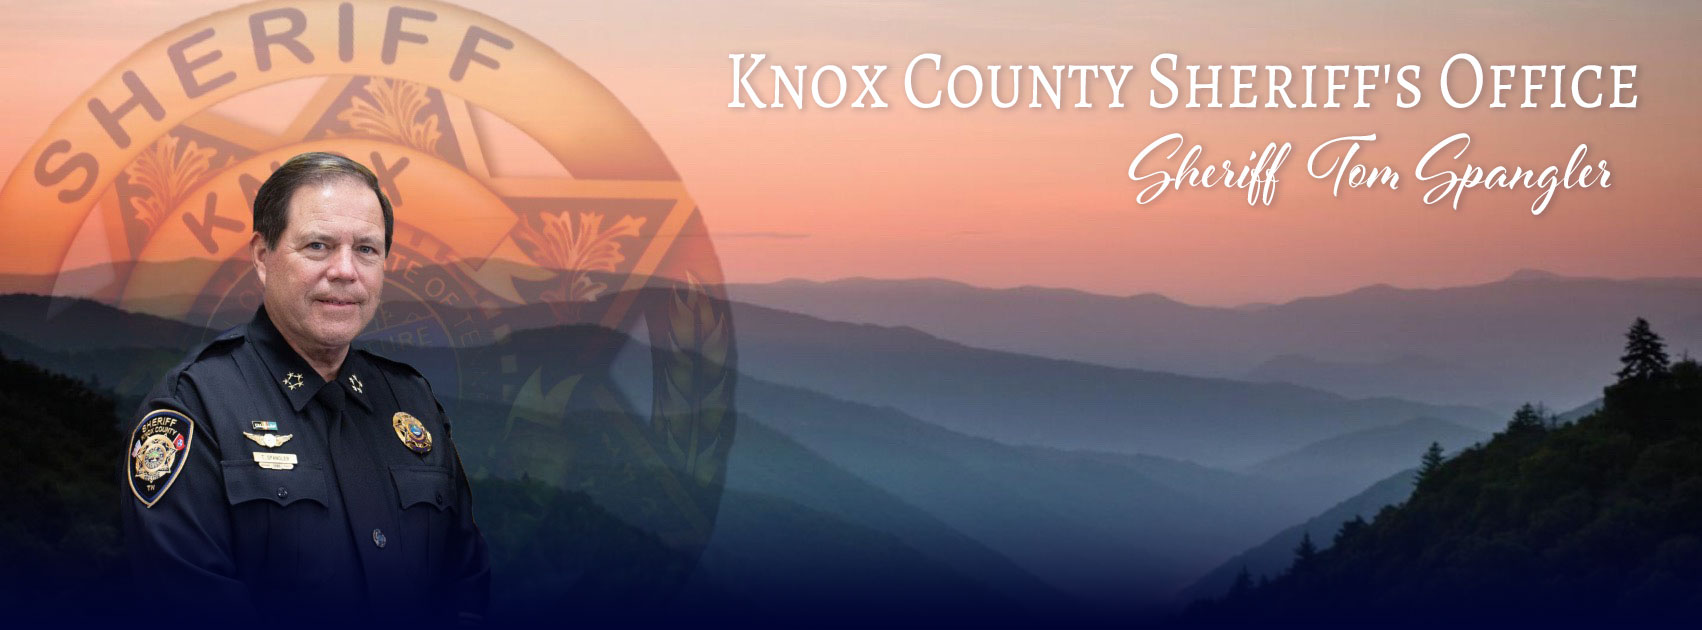 knox county sheriff